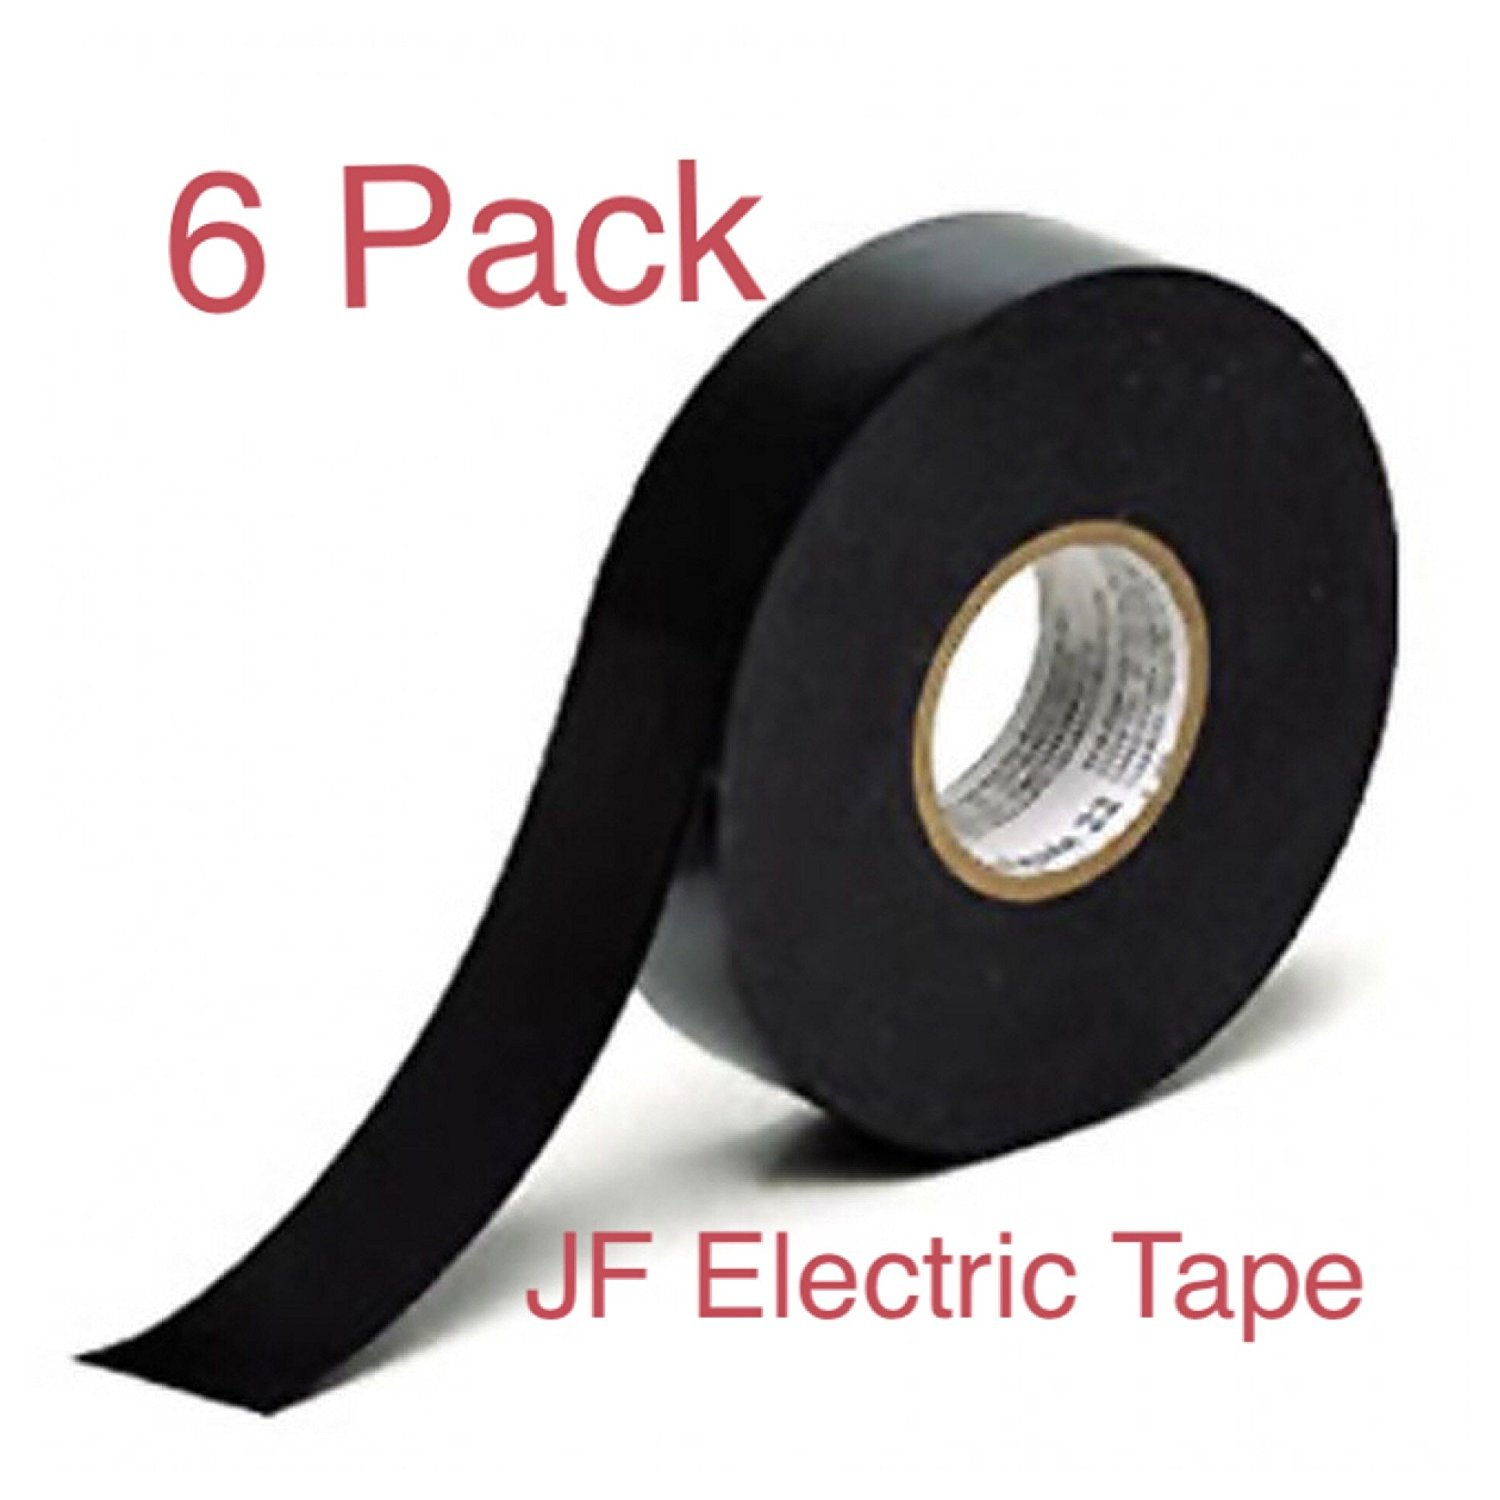 """JF Electrical Tape, Vinyl, Black, Utility Tape, Professional-Grade, 3/4"""" X 50' Value Pack, 6-Rolls."""